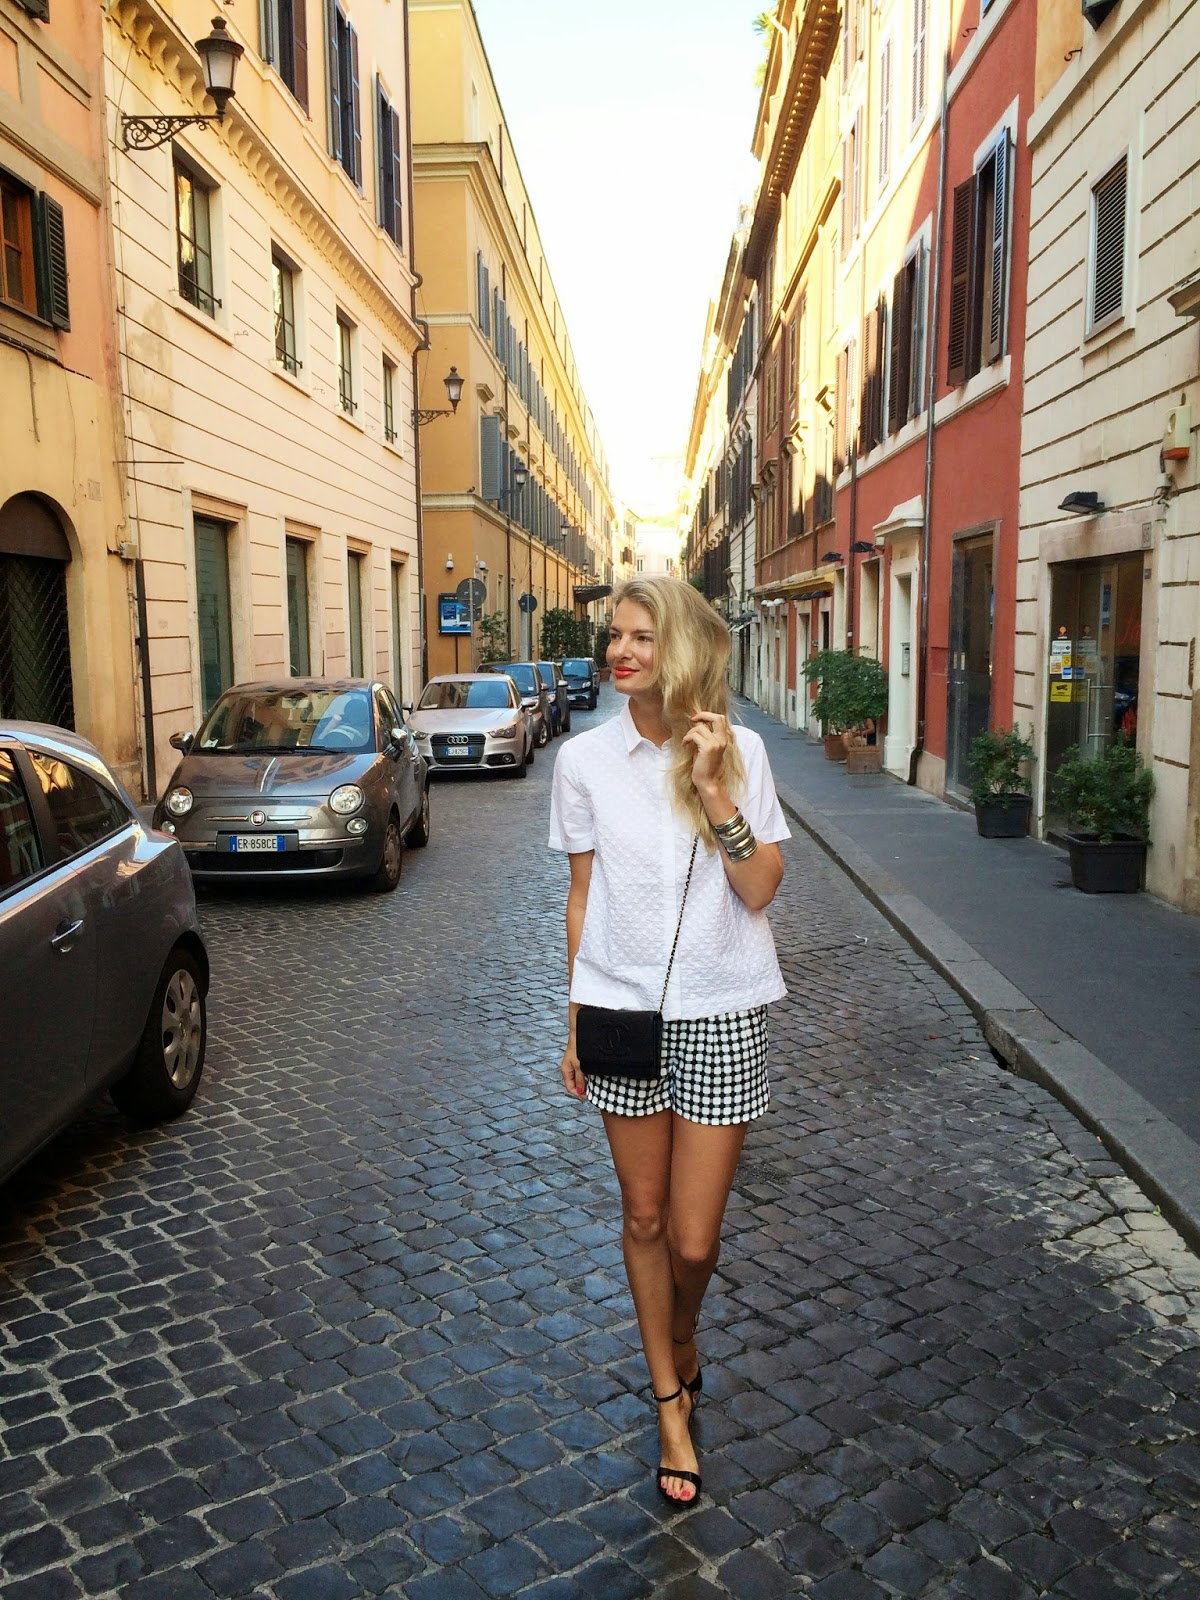 rome street style, street style, windowpane shorts, windowpane print, checked shorts, shorts and sandals, white shirt, gap shirt, styld by gap, chanel bag, chanel clutch, wallet on chain, chanel wallet on chain, unisa sandals, black sandals, rome, rom, roma, italy, travel, monochrome look, fashion blogger, blonde fashion blogger